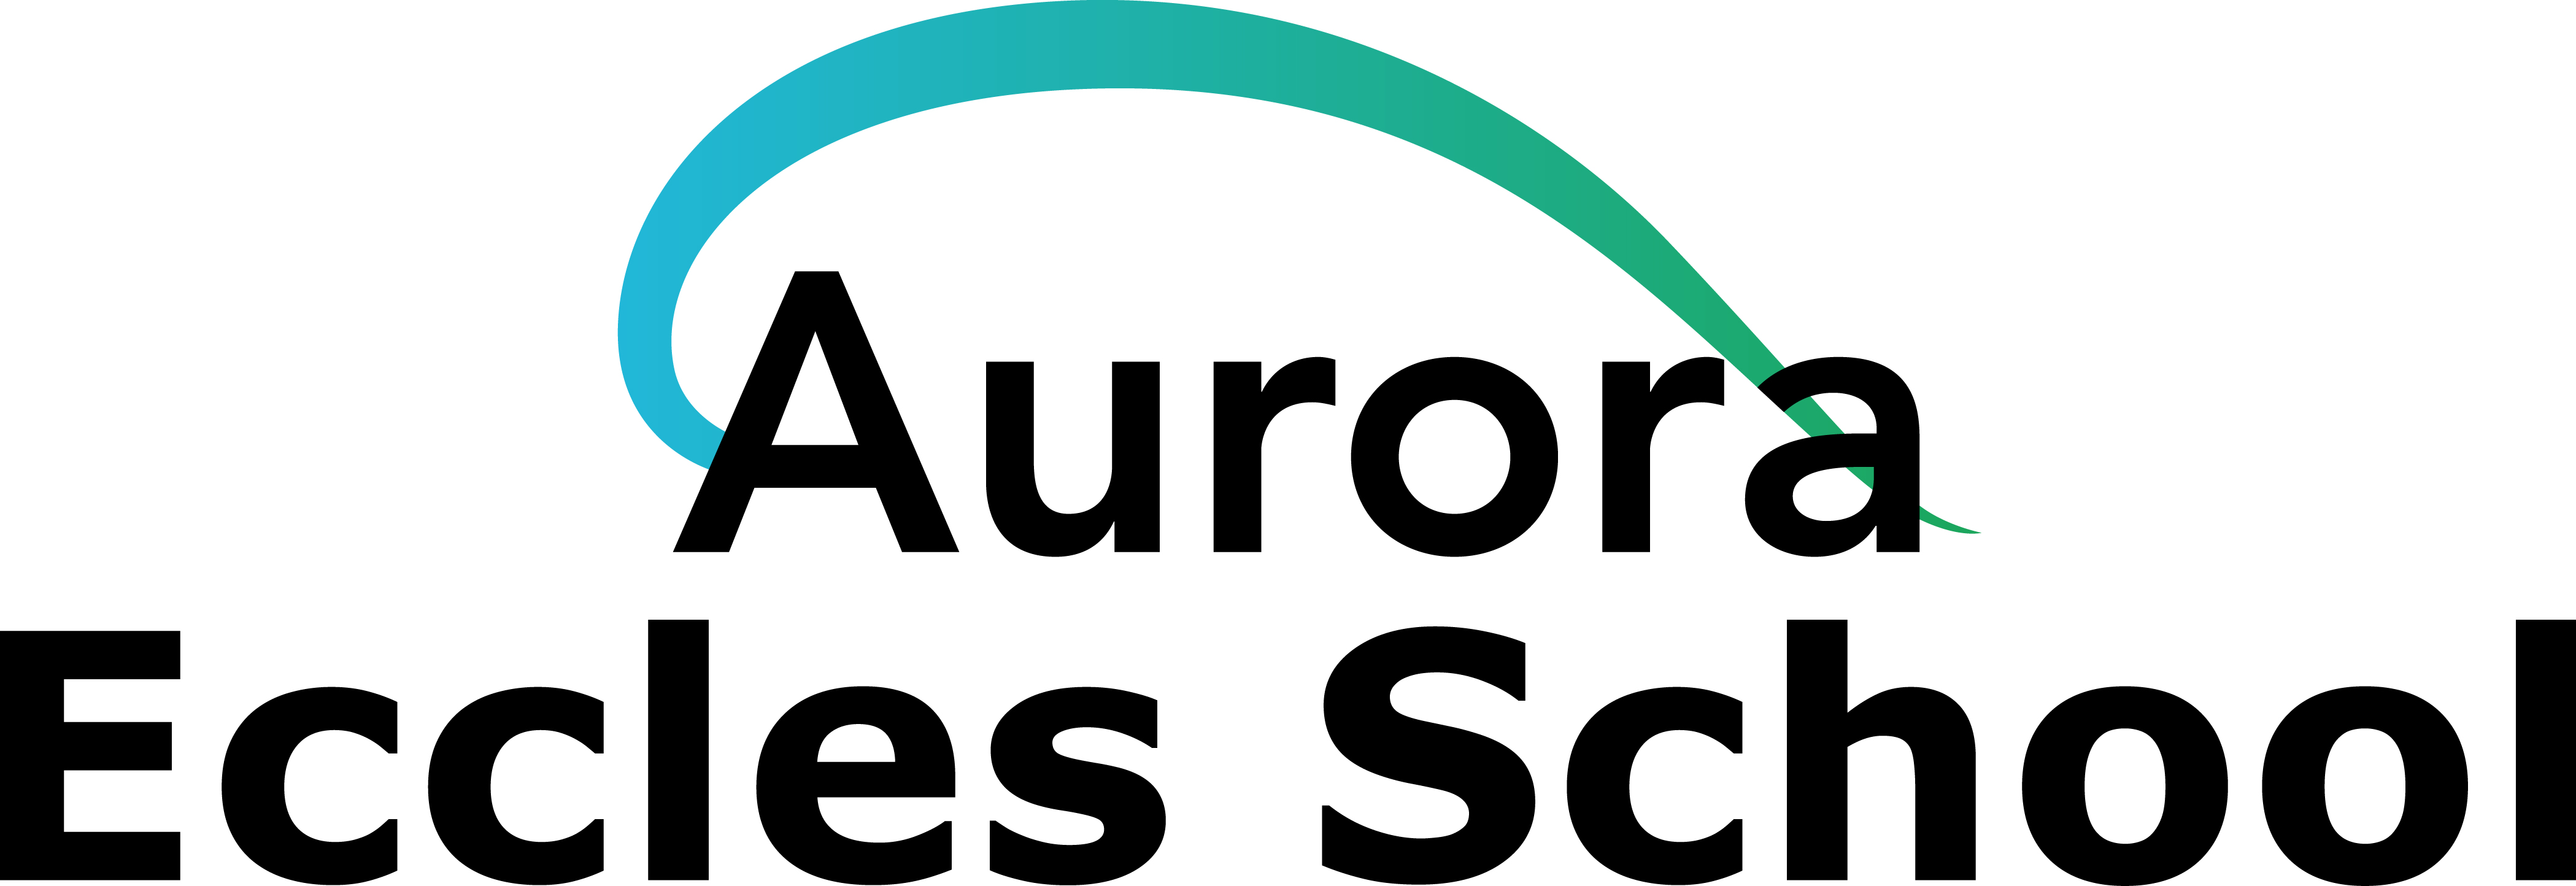 Aurora Eccles School Logo